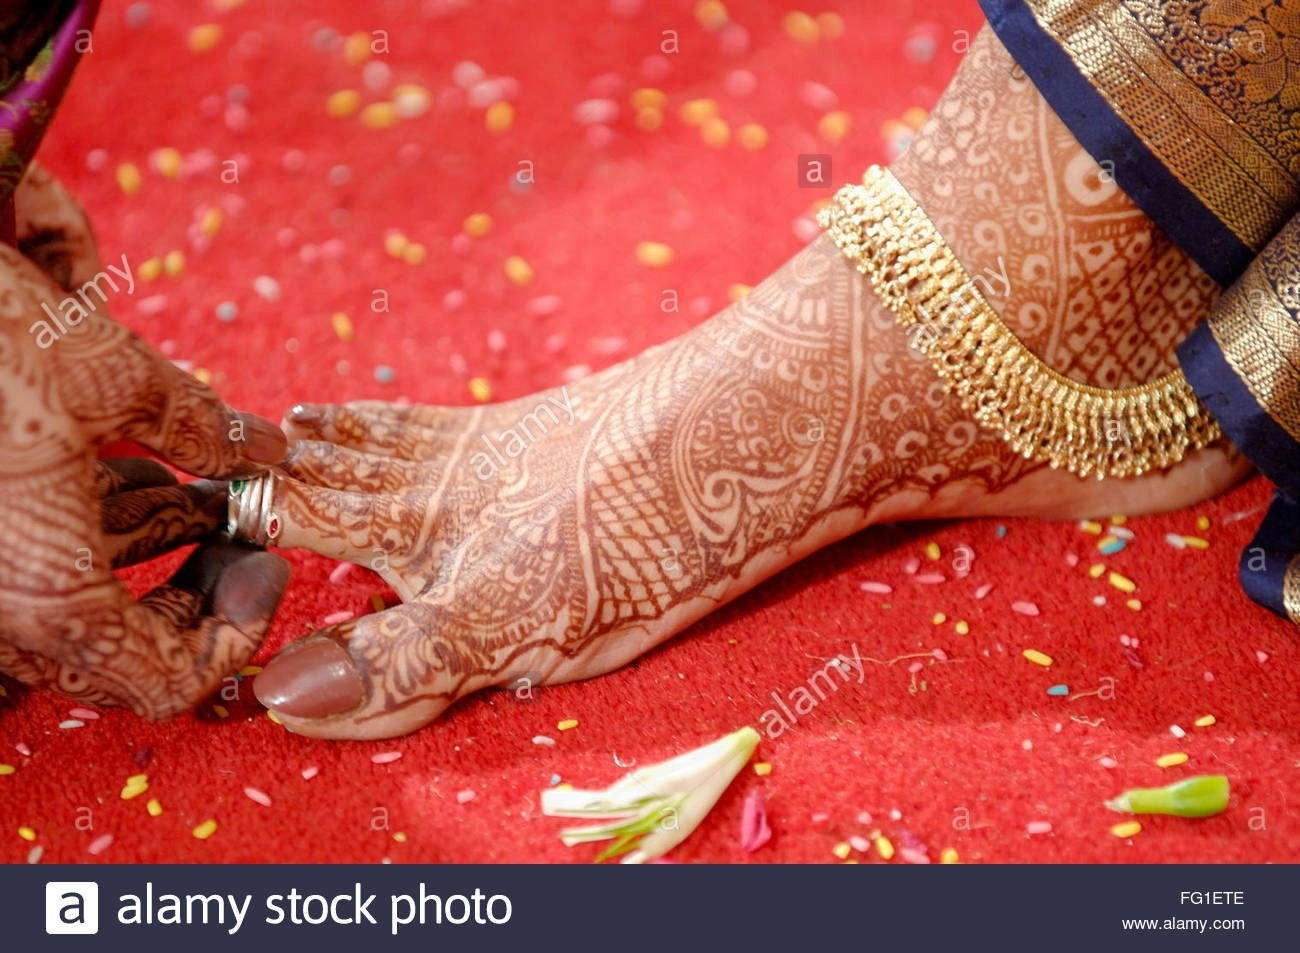 Toe Ring Stock Photos & Toe Ring Stock Images – Alamy Inside Most Current Wedding Toe Rings (View 7 of 15)